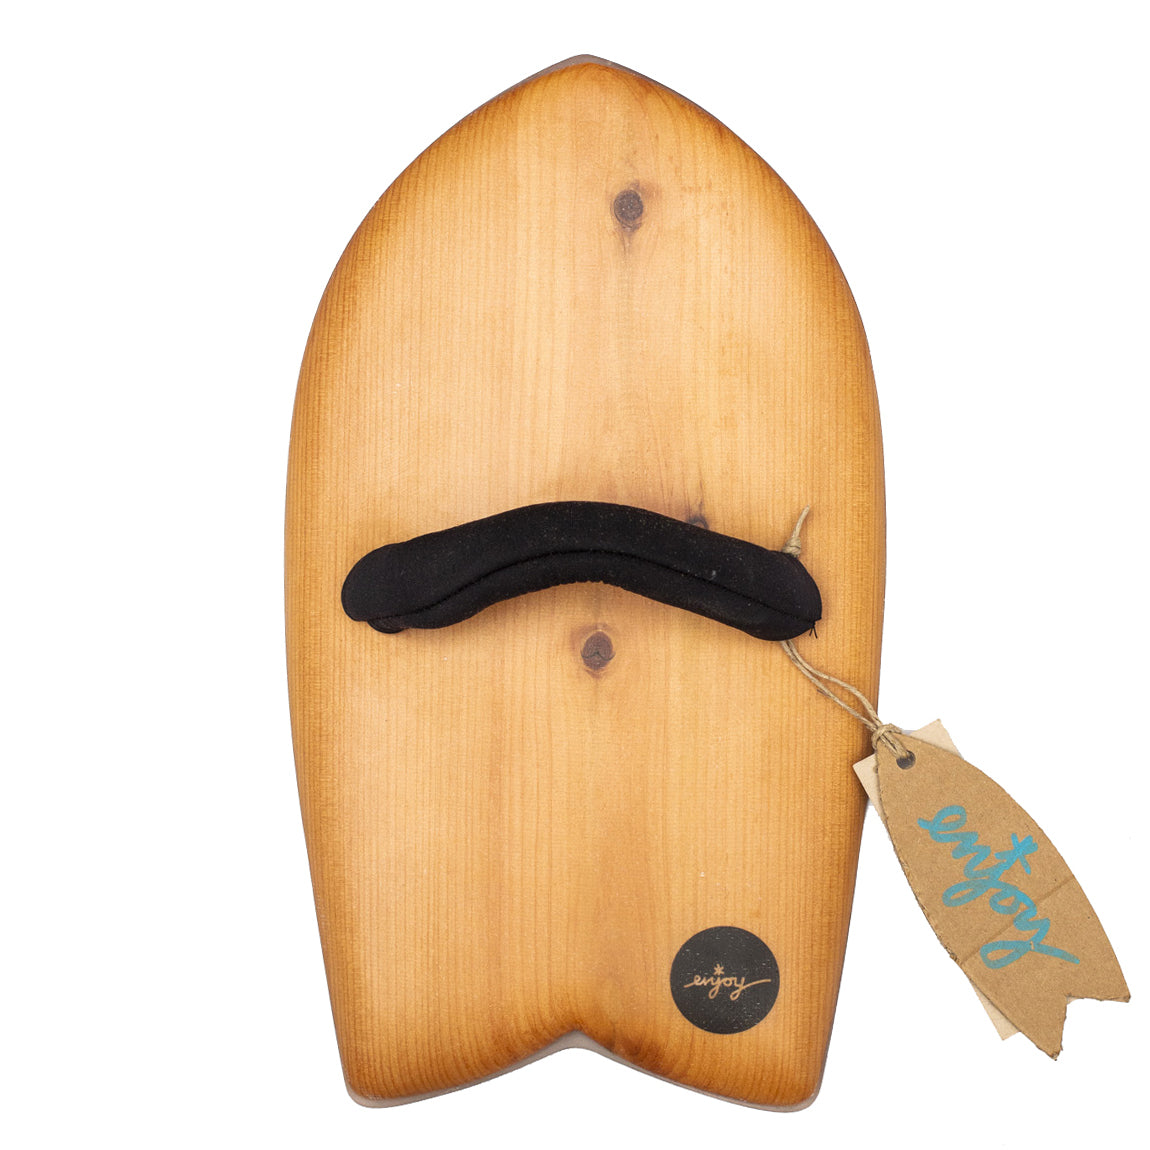 ENJOY HAND PLANES - FISH WOOD